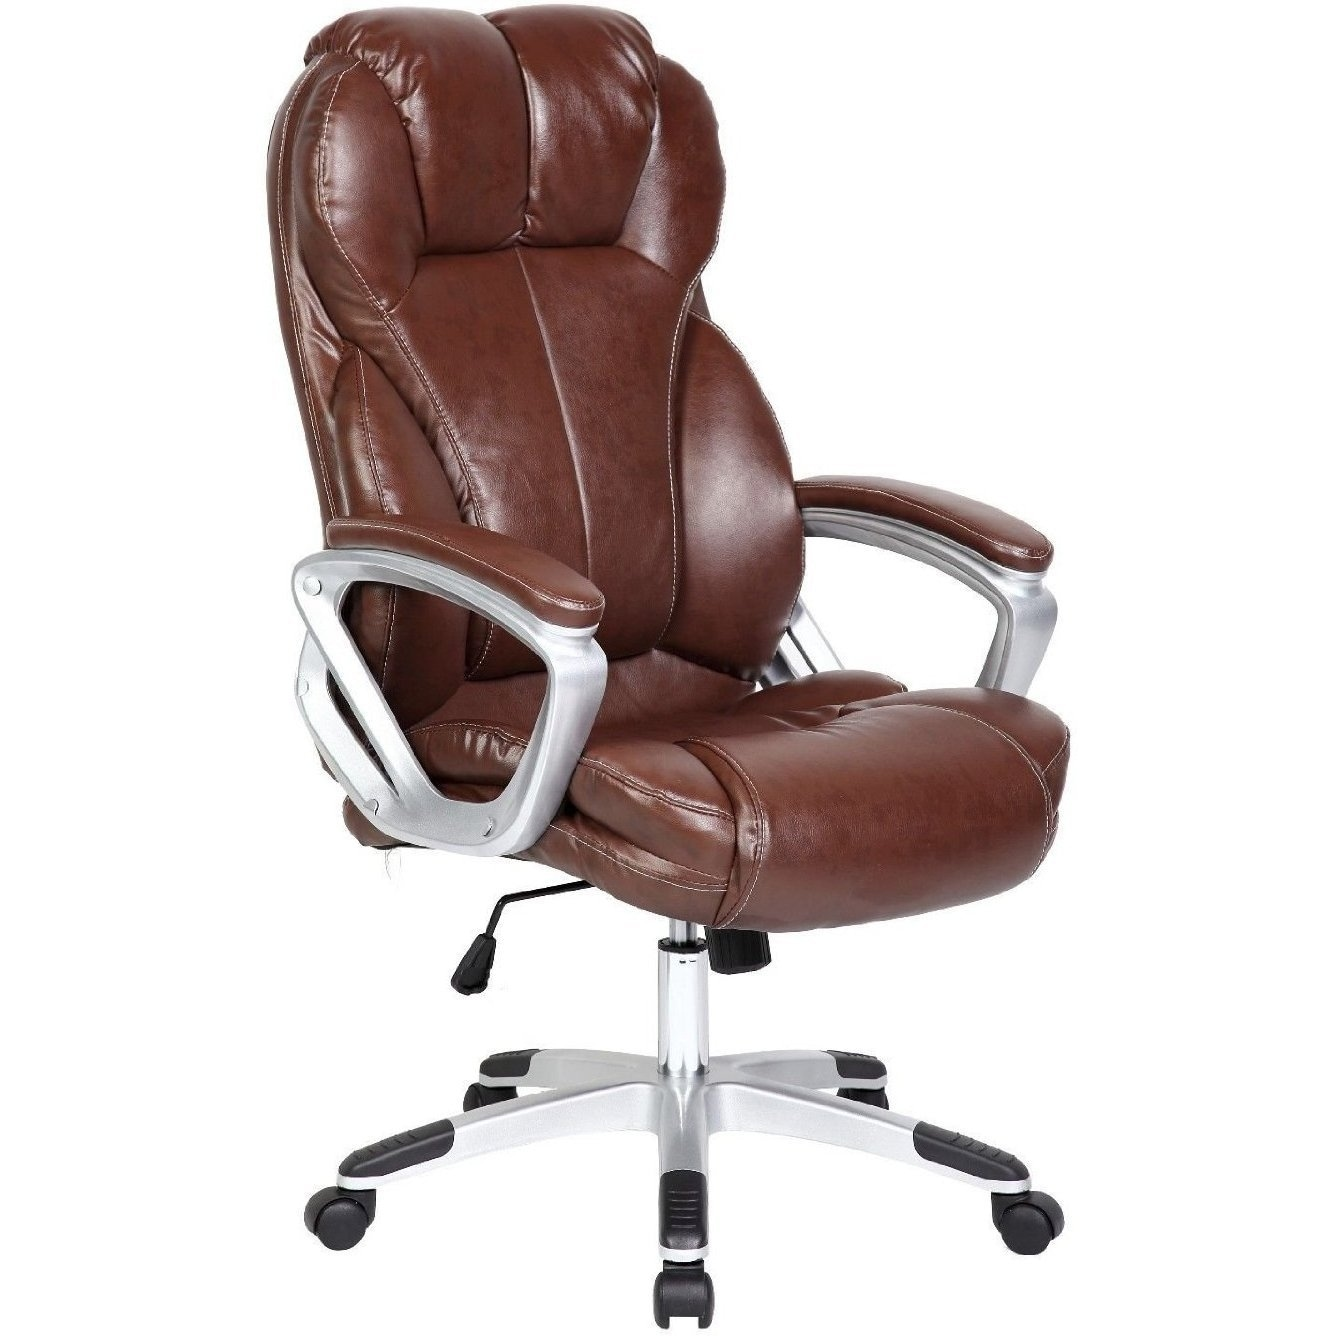 2xhome Brown Leather Deluxe Professional Ergonomic High Back Executive Office Chair Free Shipping Today 14039725